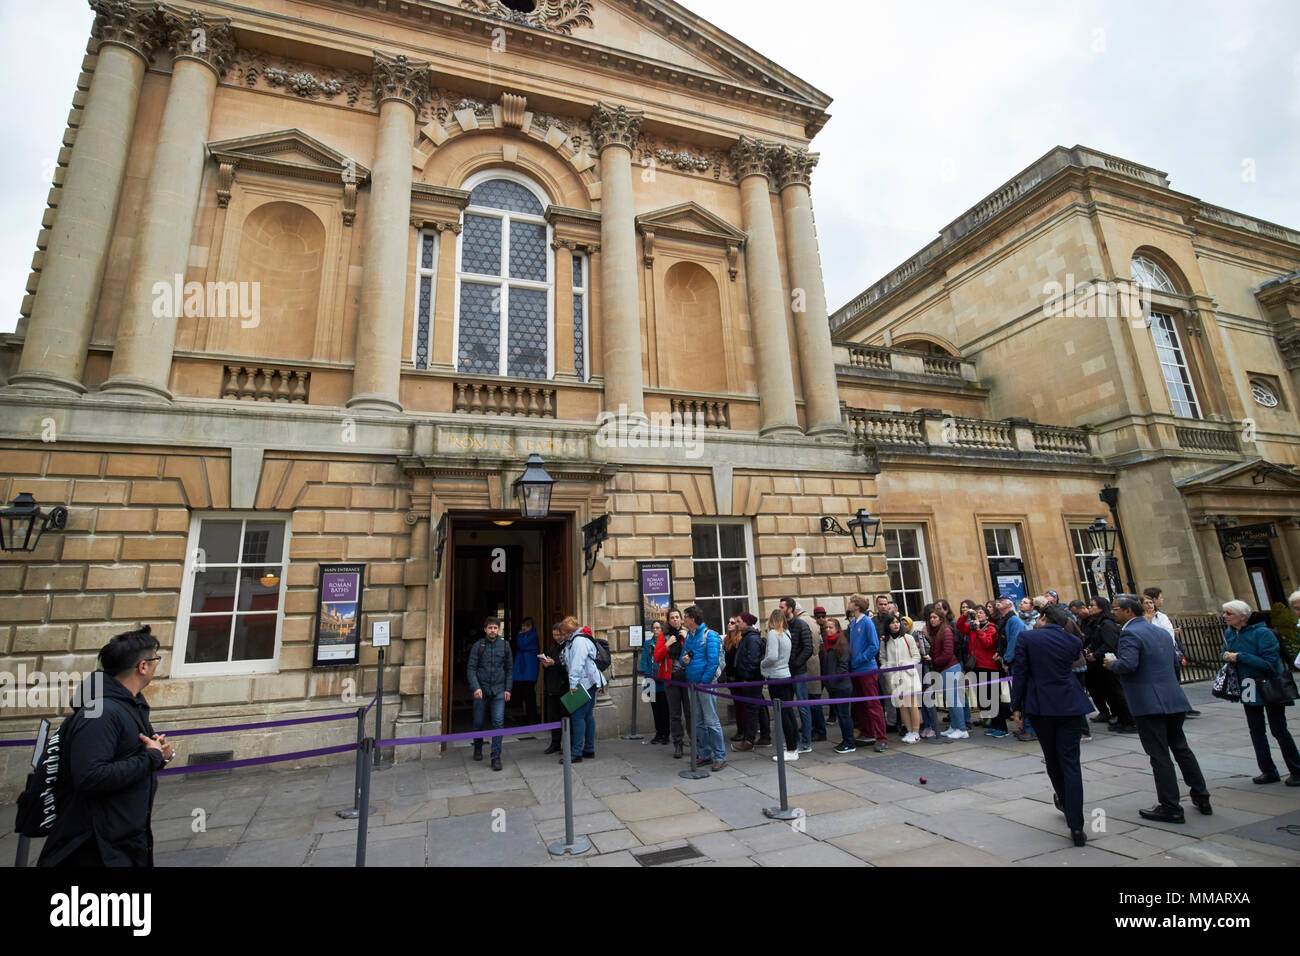 queues of tourists waiting in line to enter the roman baths complex abbey churchyard Bath England UK - Stock Image